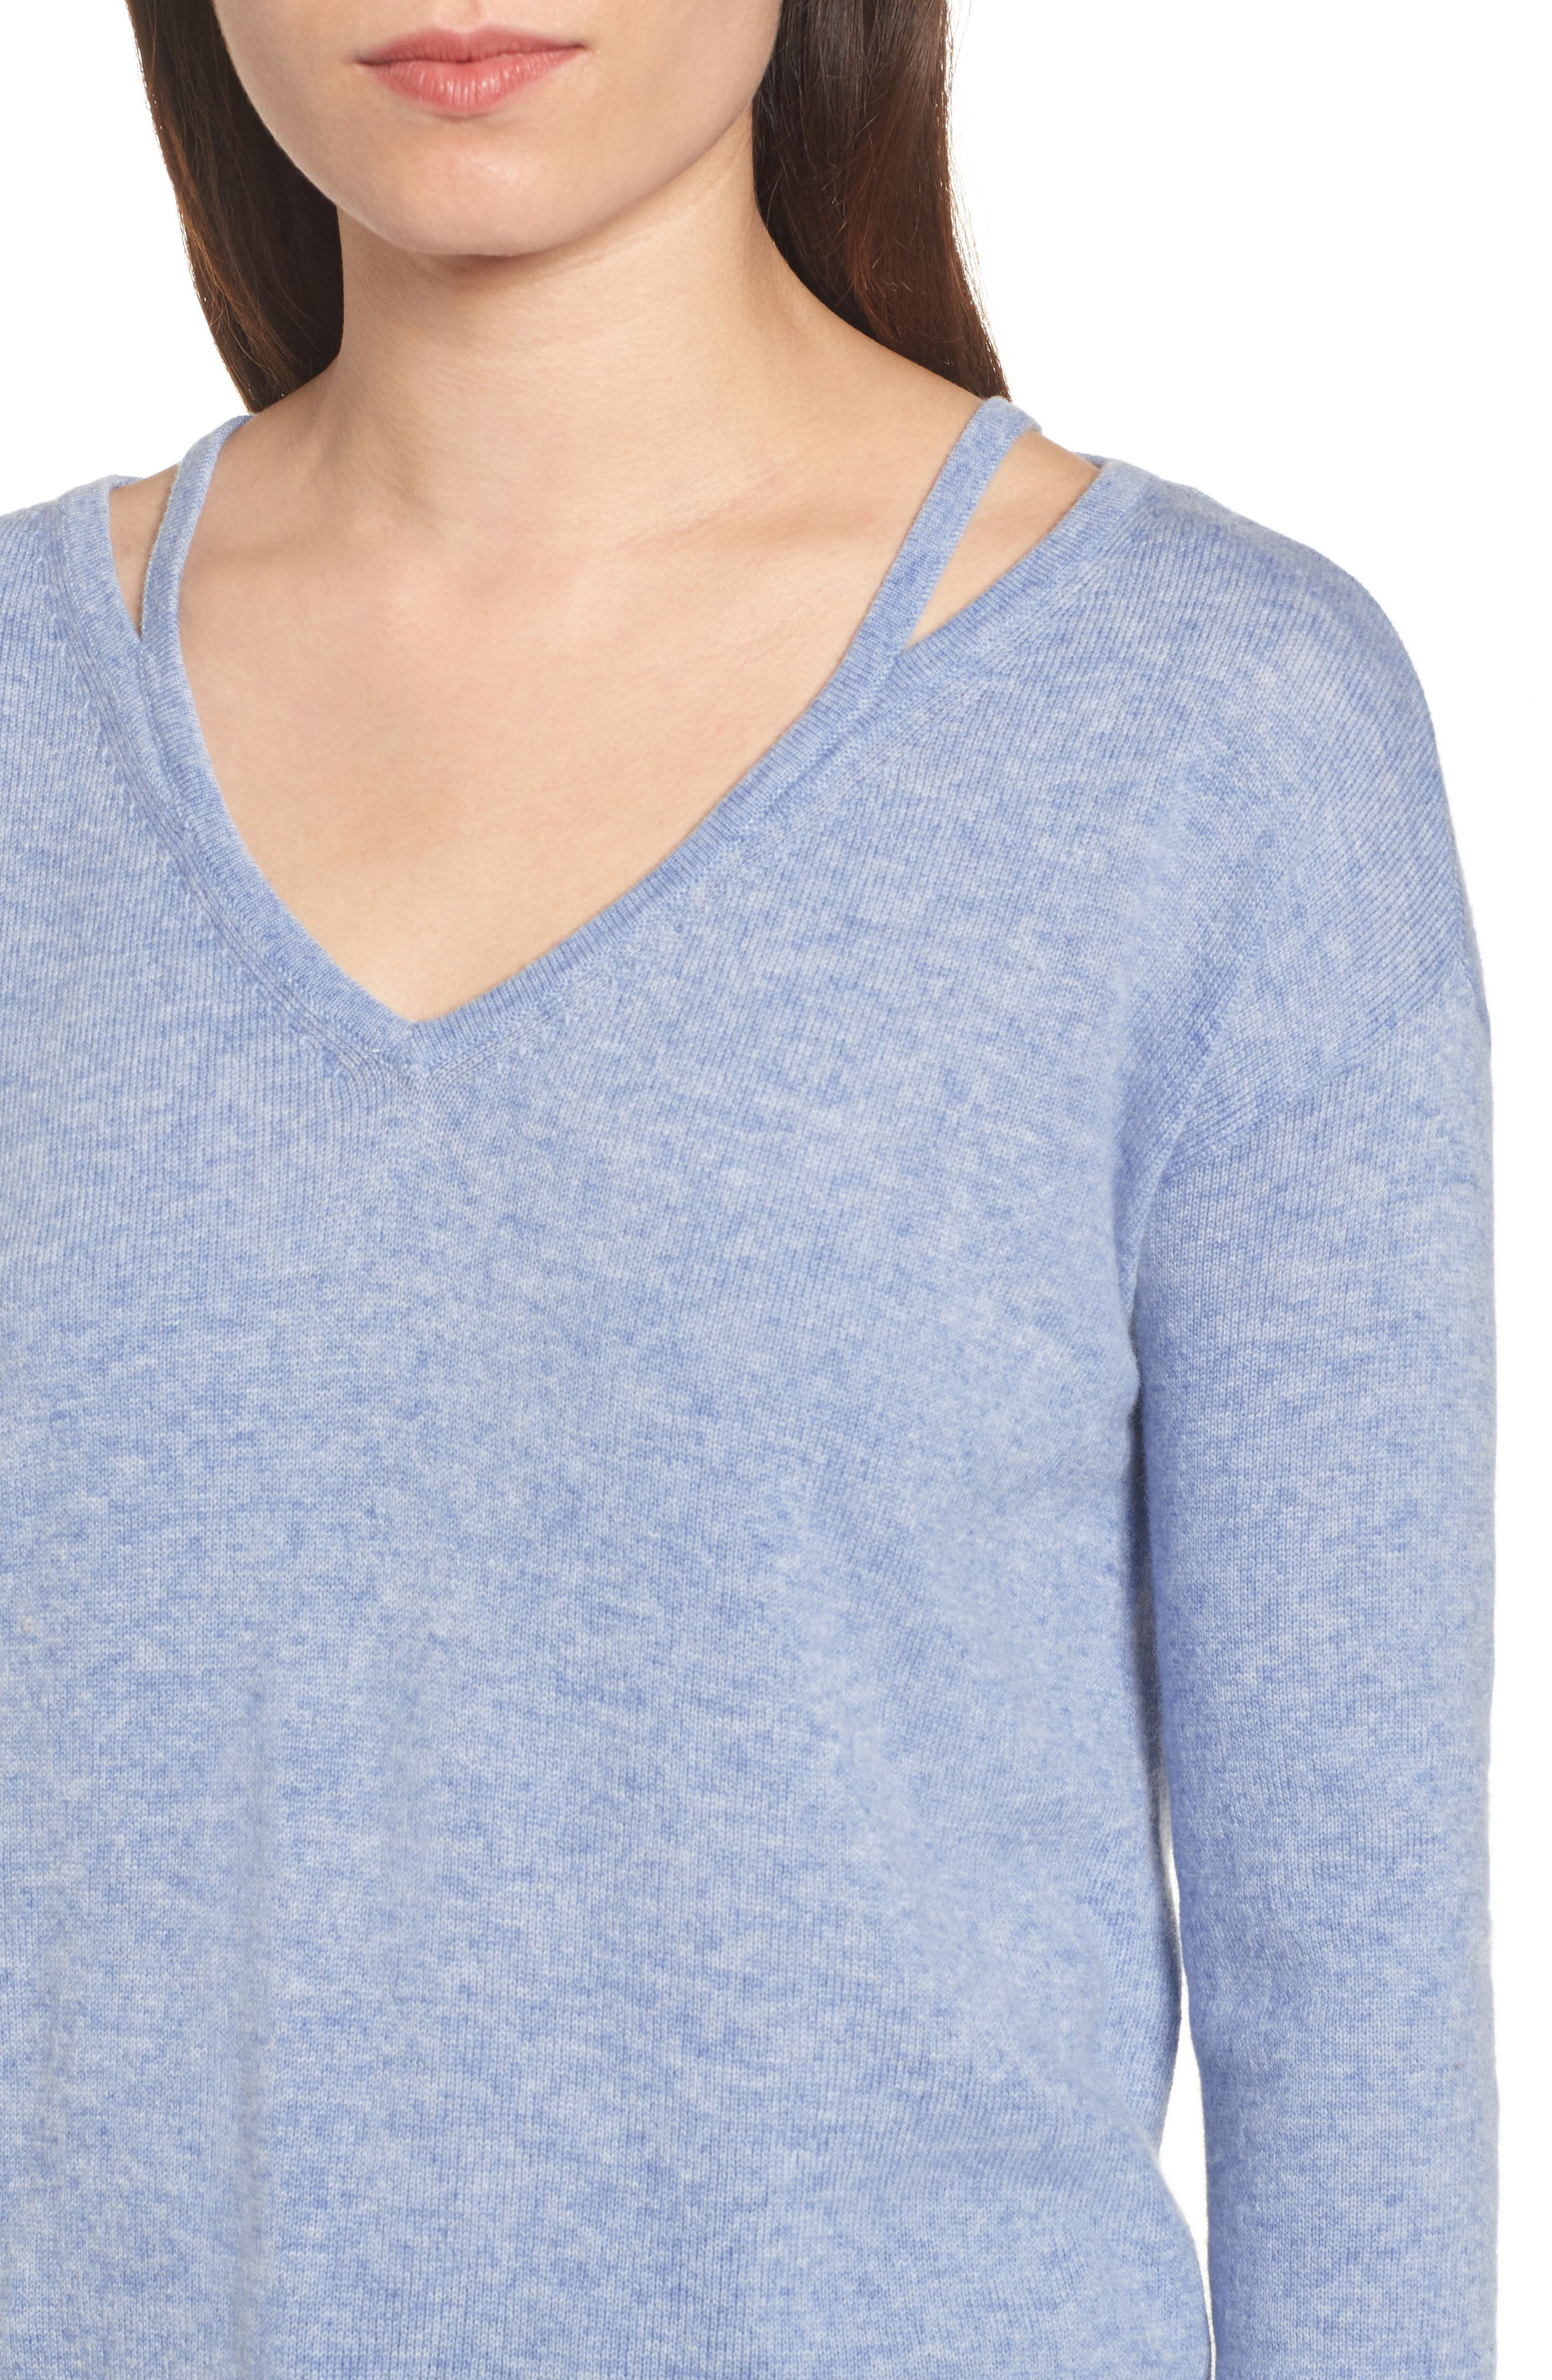 Kenley Wool & Cashmere Sweater,                             Alternate thumbnail 4, color,                             400